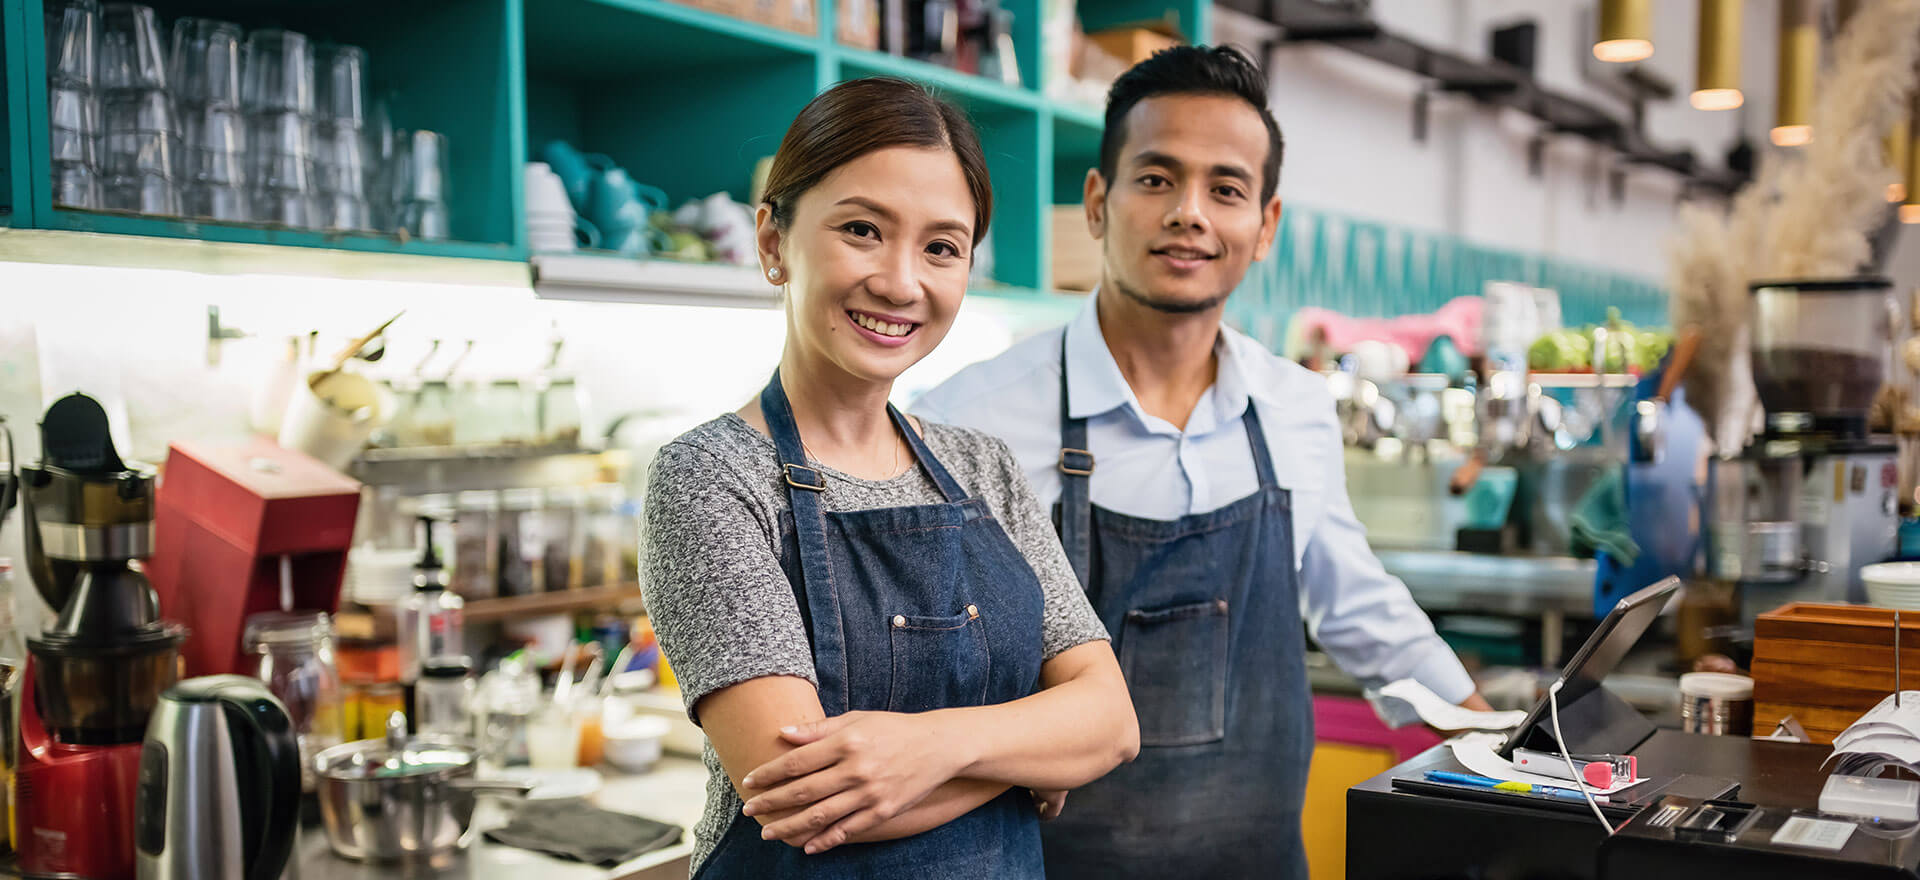 Small business owners in their cafe.